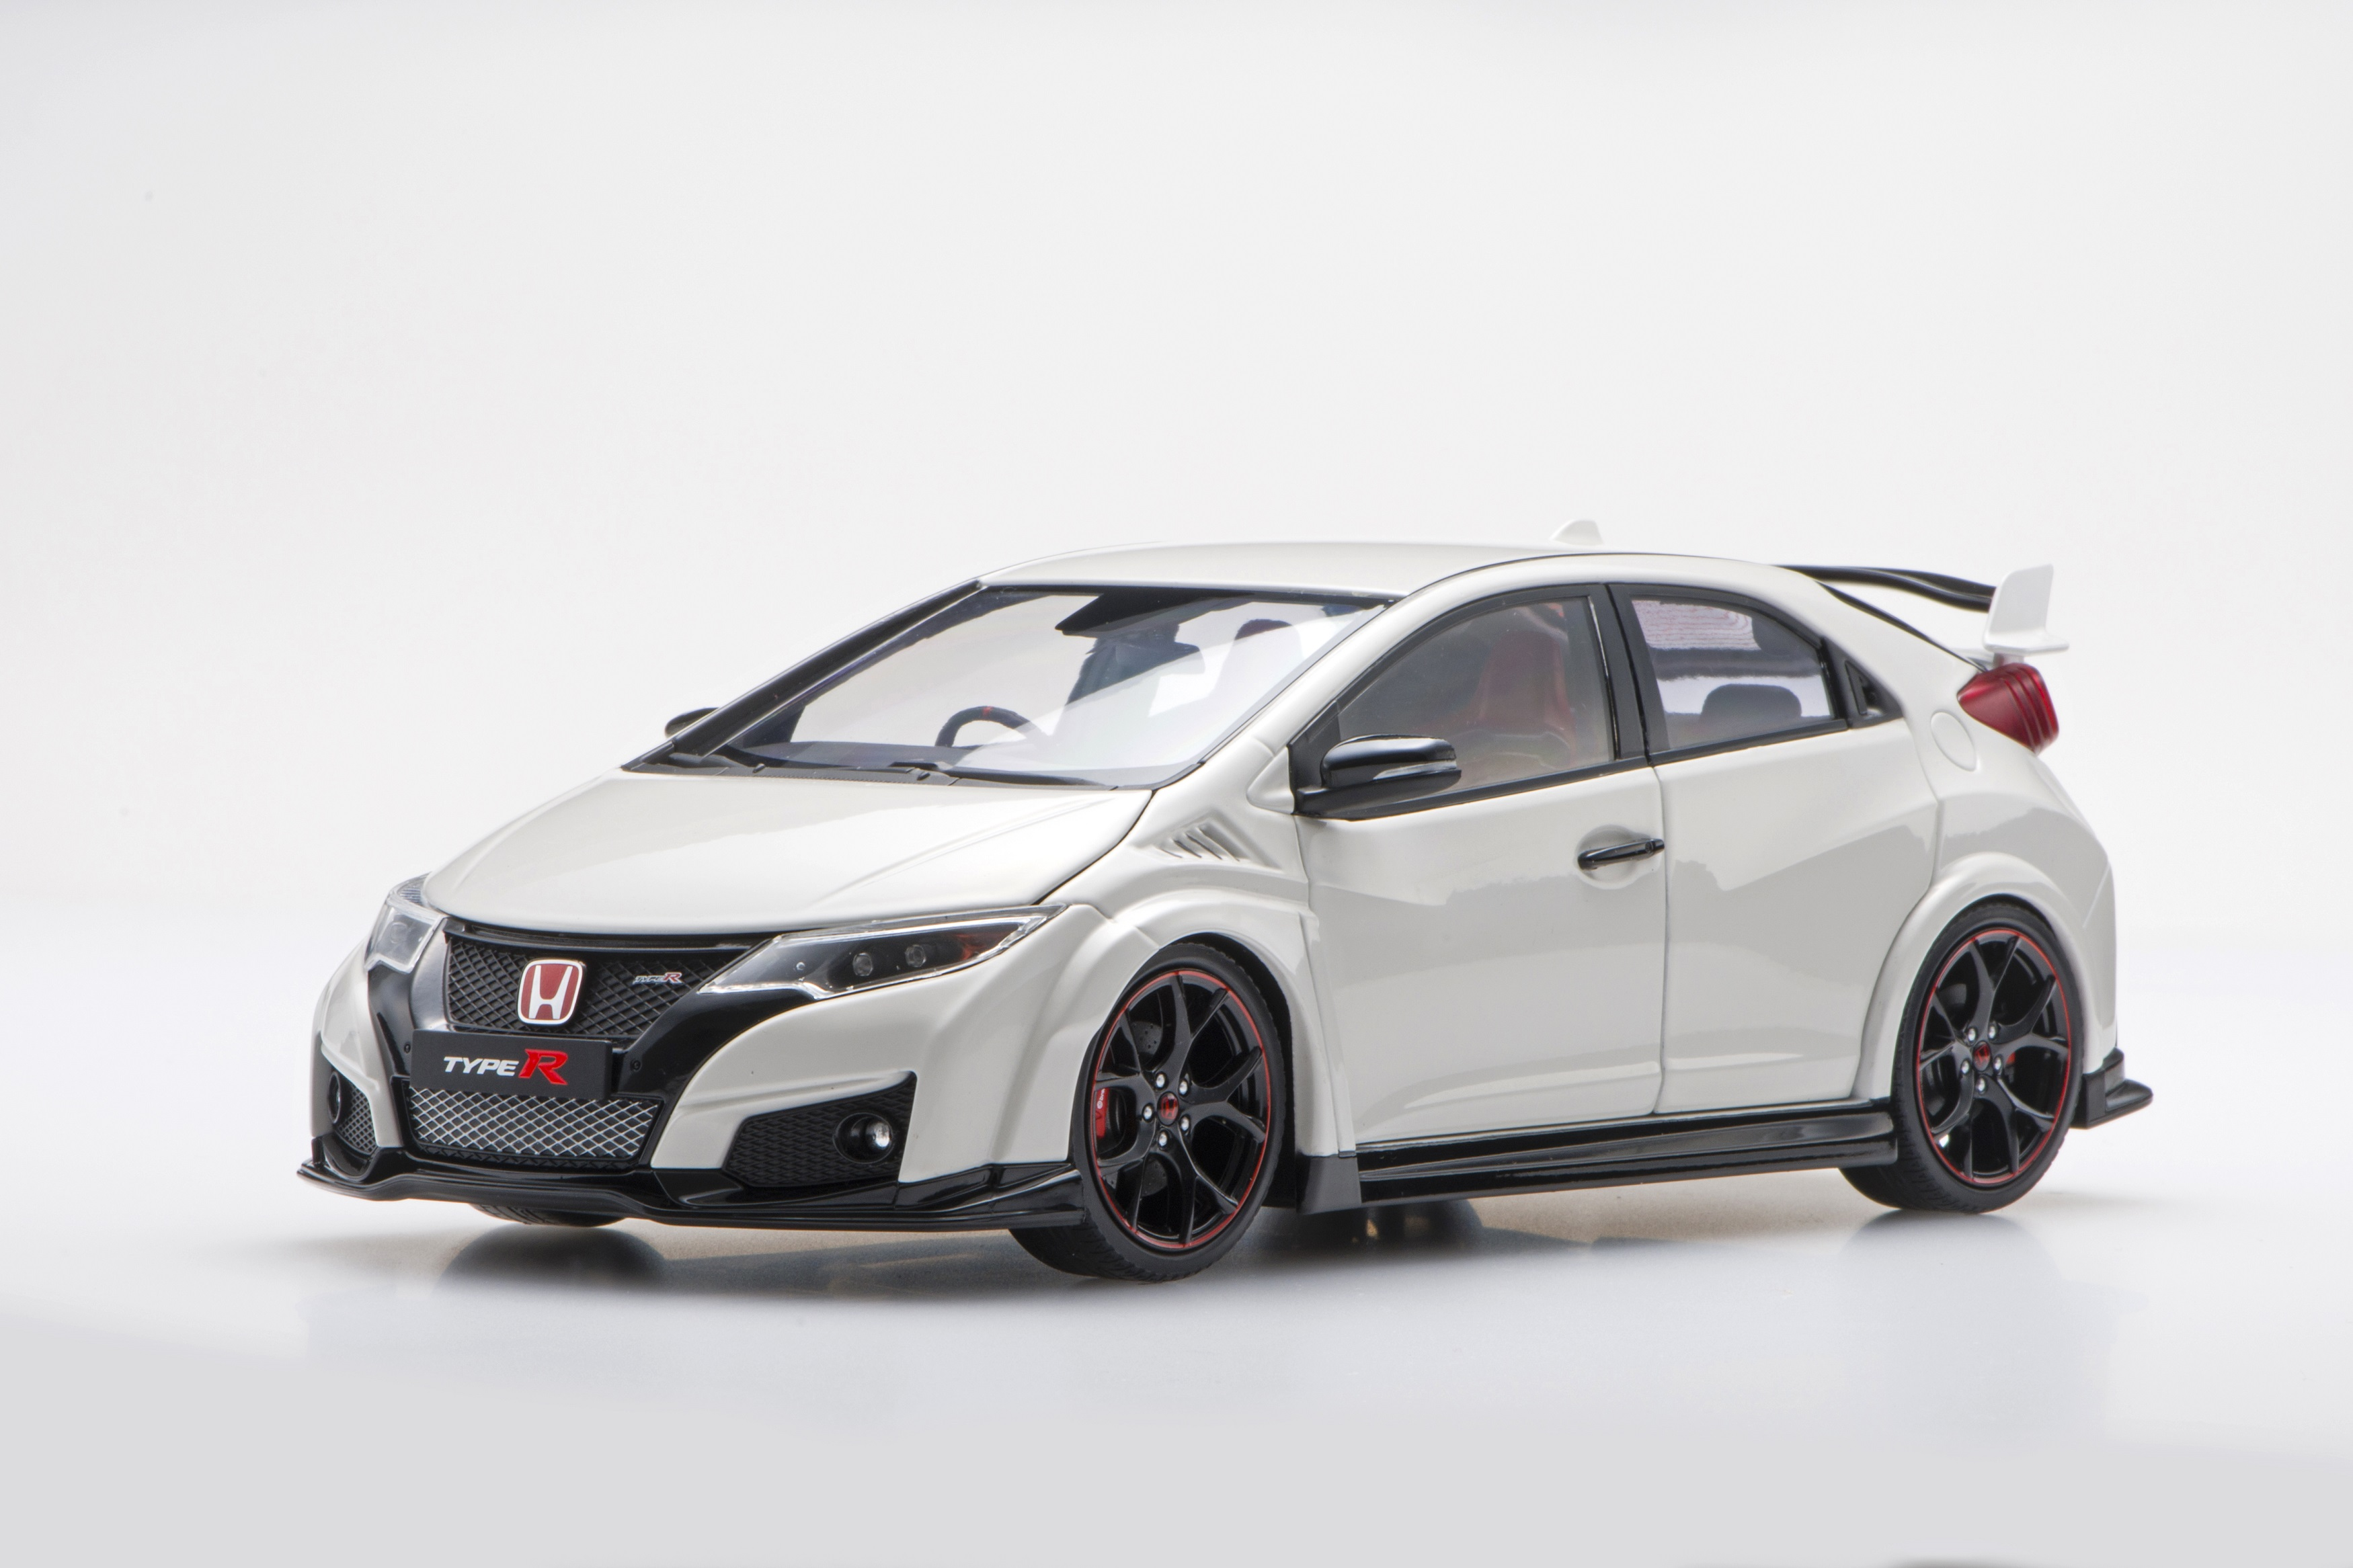 【81061】1/18 Honda CIVIC TYPE R 2015 (UK License Plate) (Championship White)